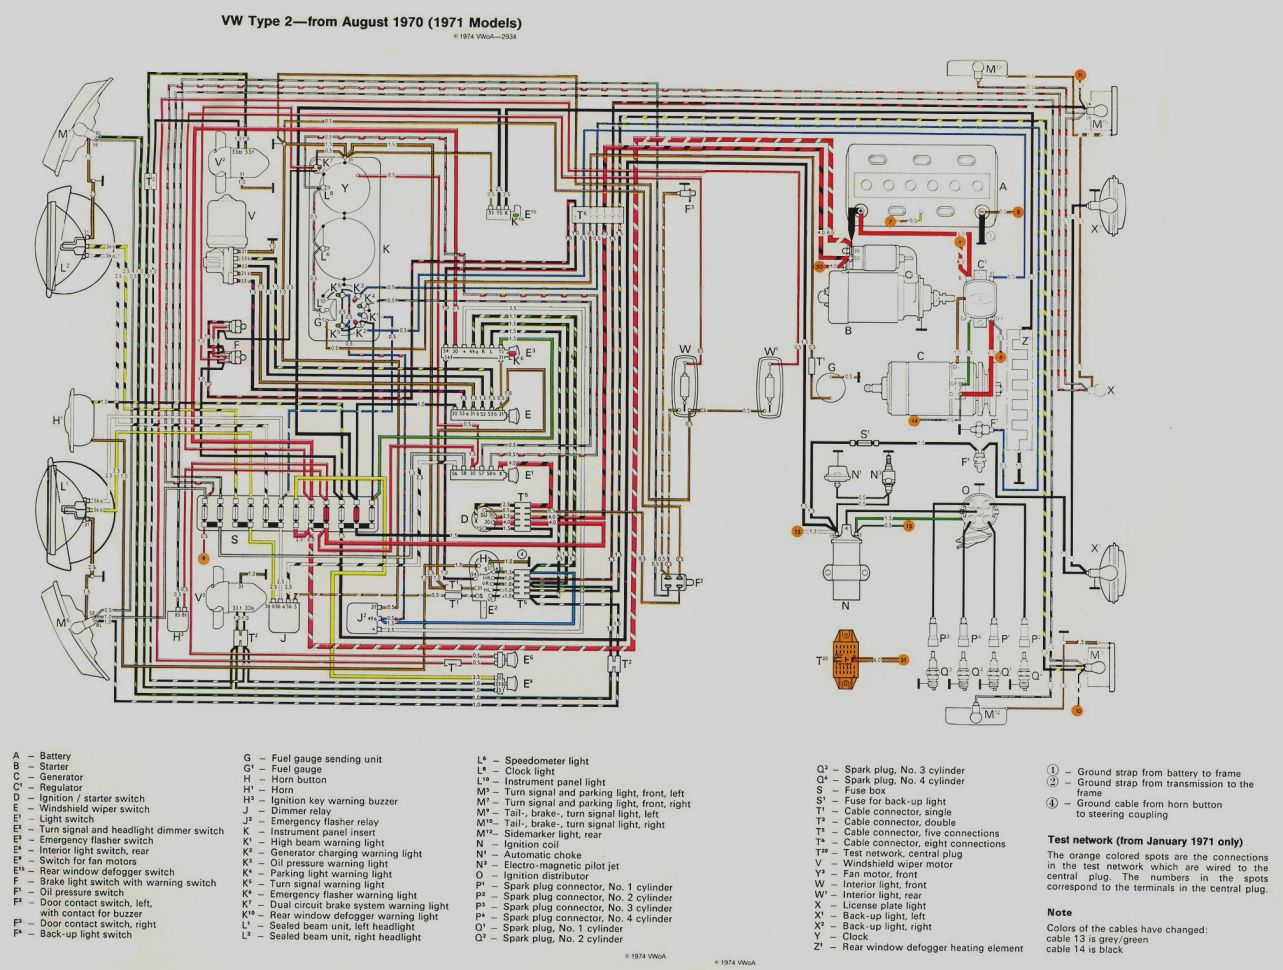 hight resolution of 1996 volkswagen wiring diagram blog wiring diagram 1996 vw golf radio wiring diagram 1996 volkswagen wiring